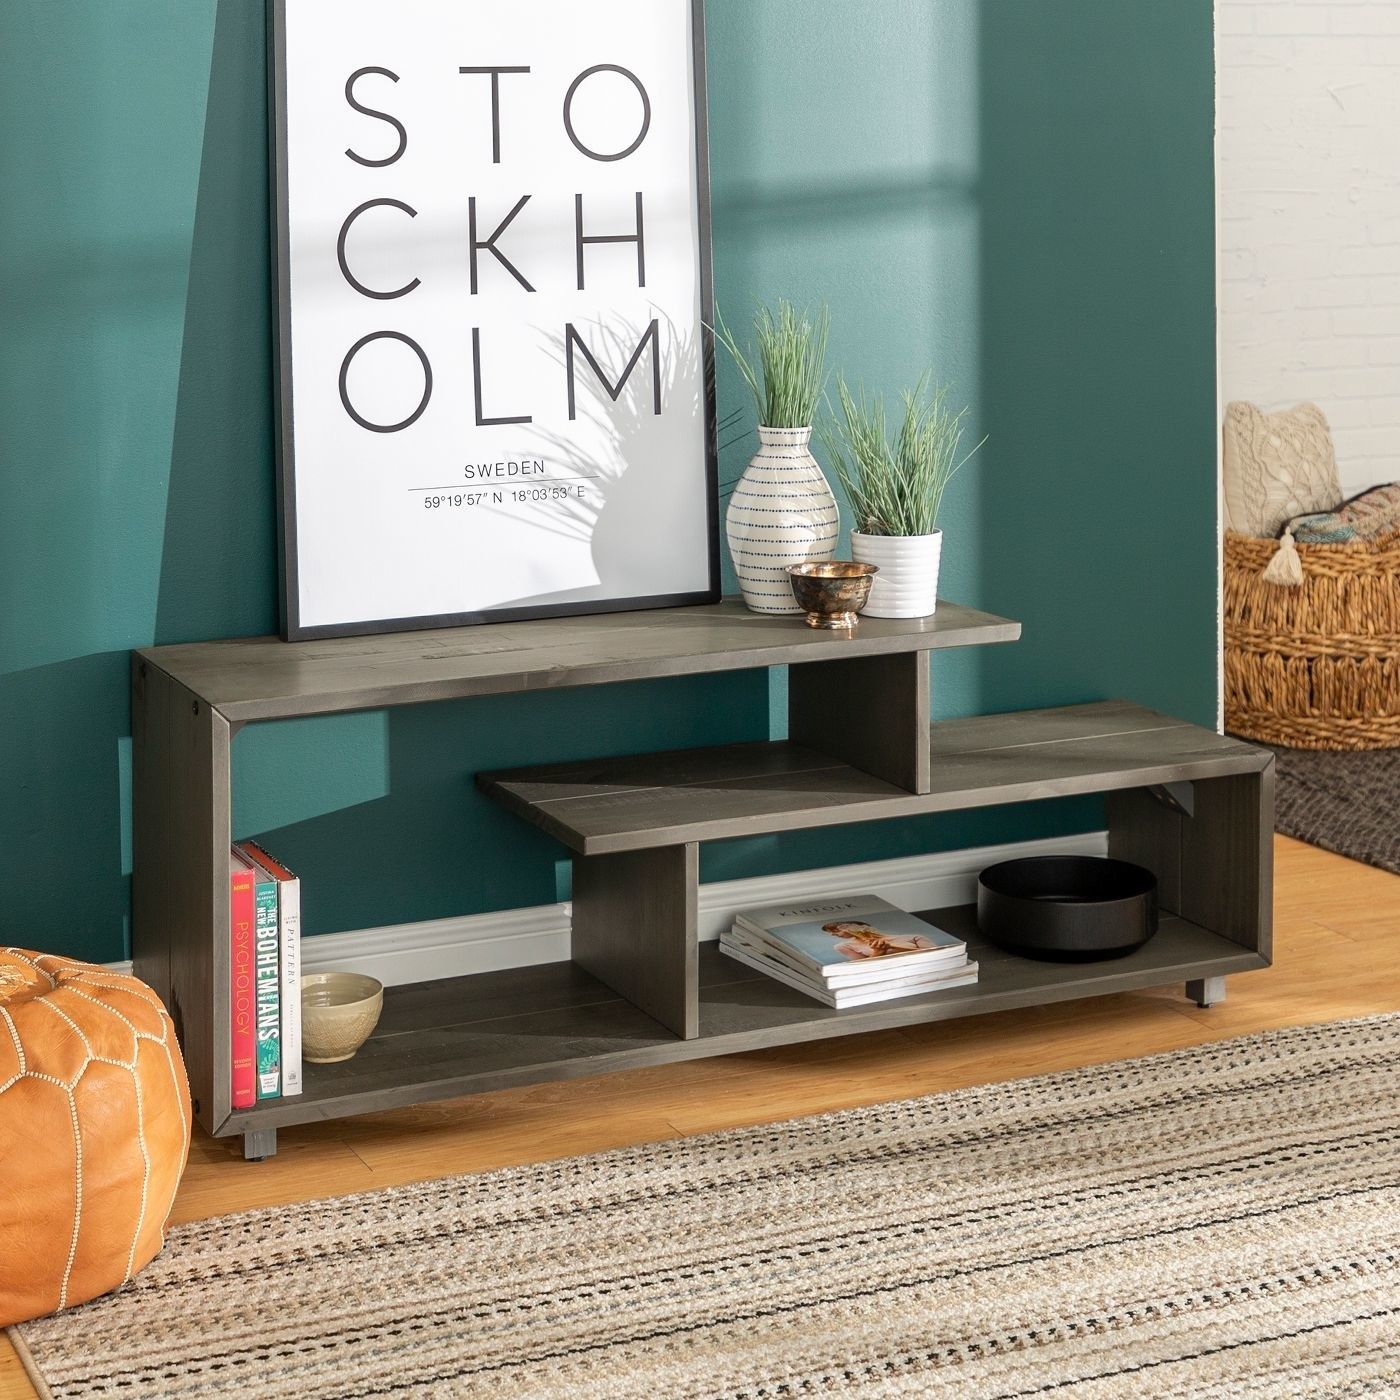 A rustic wood TV stand in a gray wash